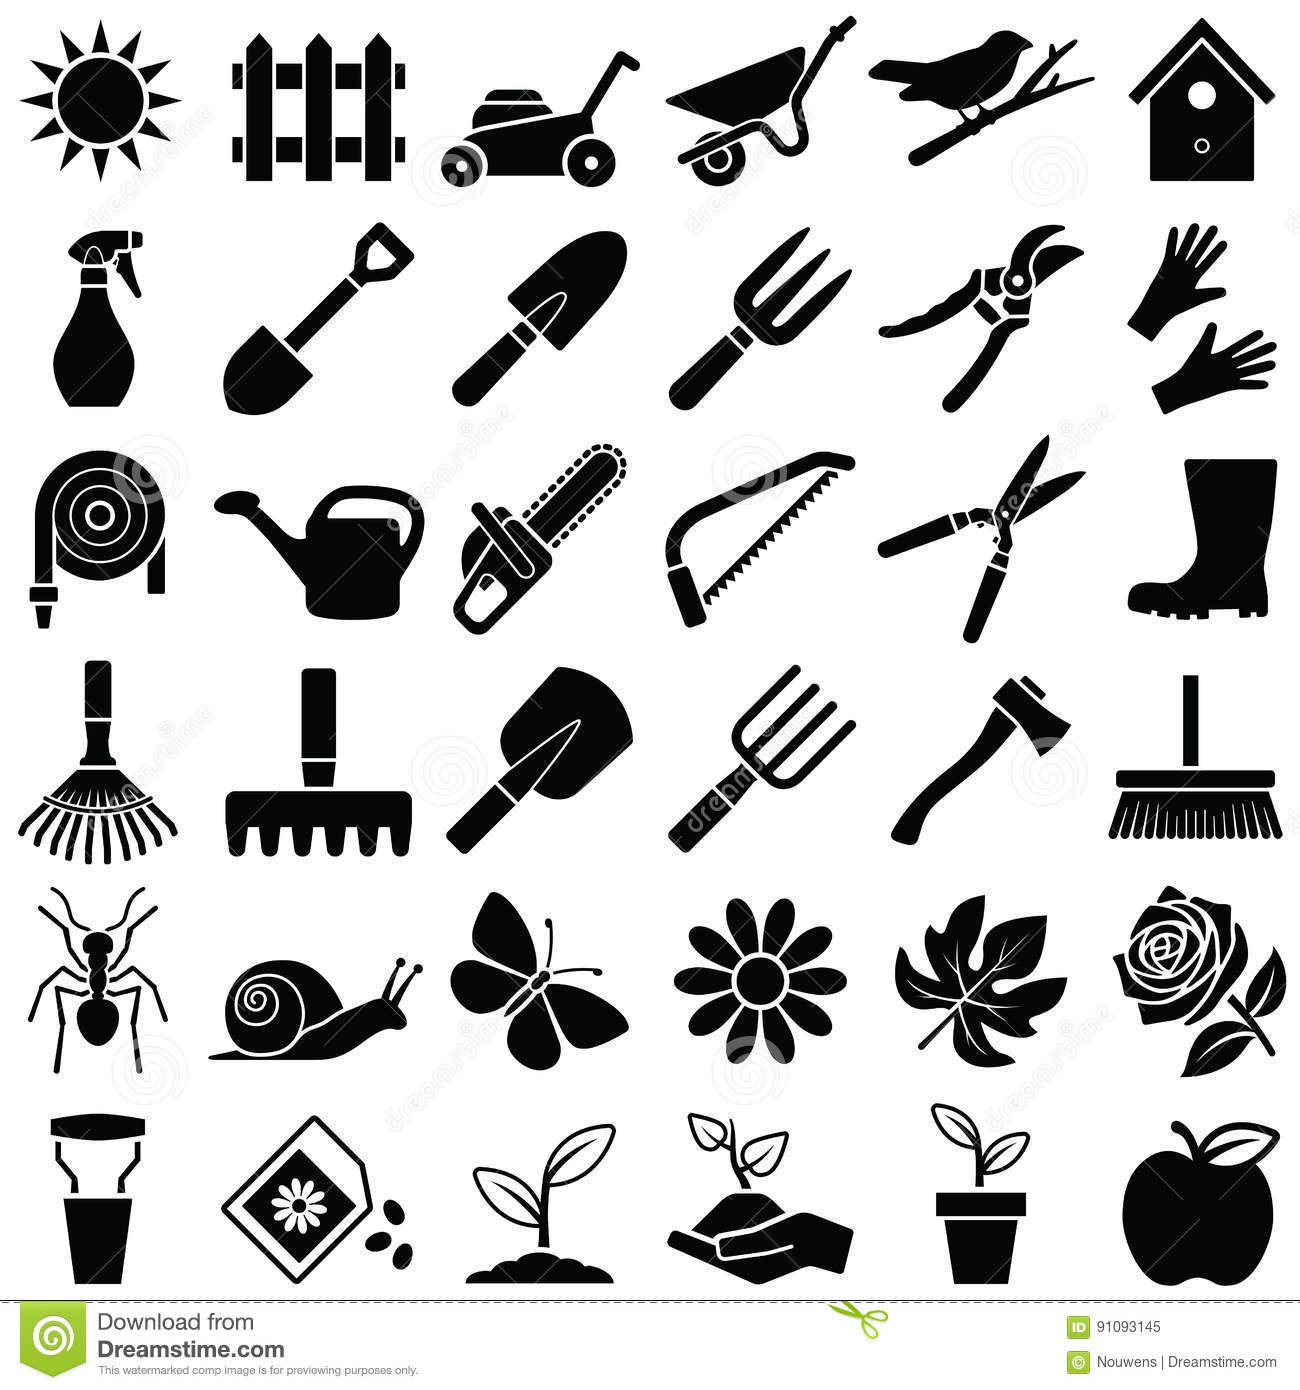 Lawn Mower Cartoons Illustrations Amp Vector Stock Images